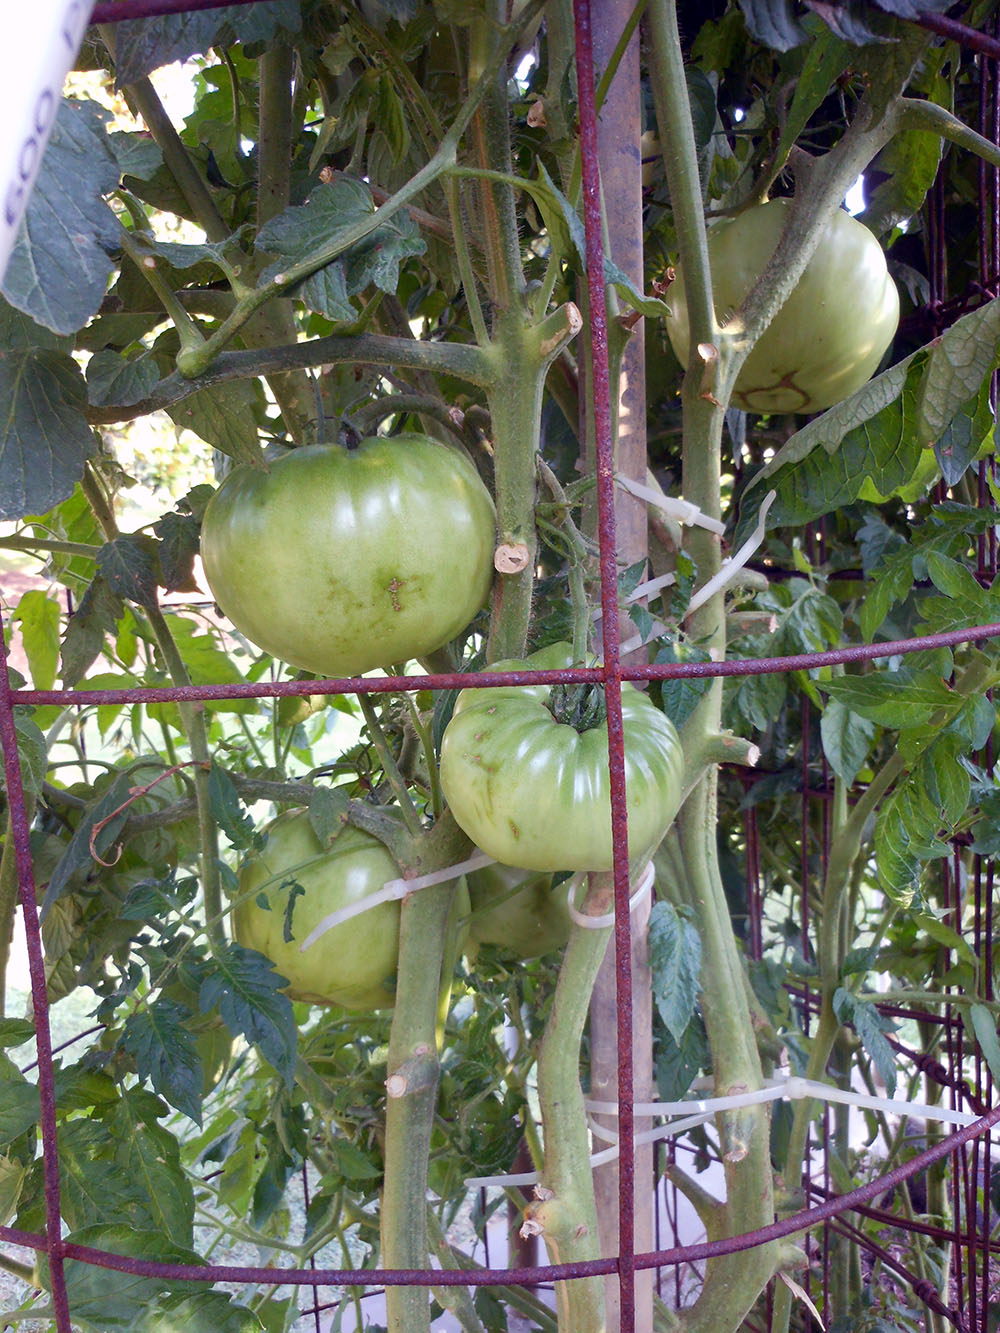 06-25-2015 Garden 02 Better Boy Tomatoes 03